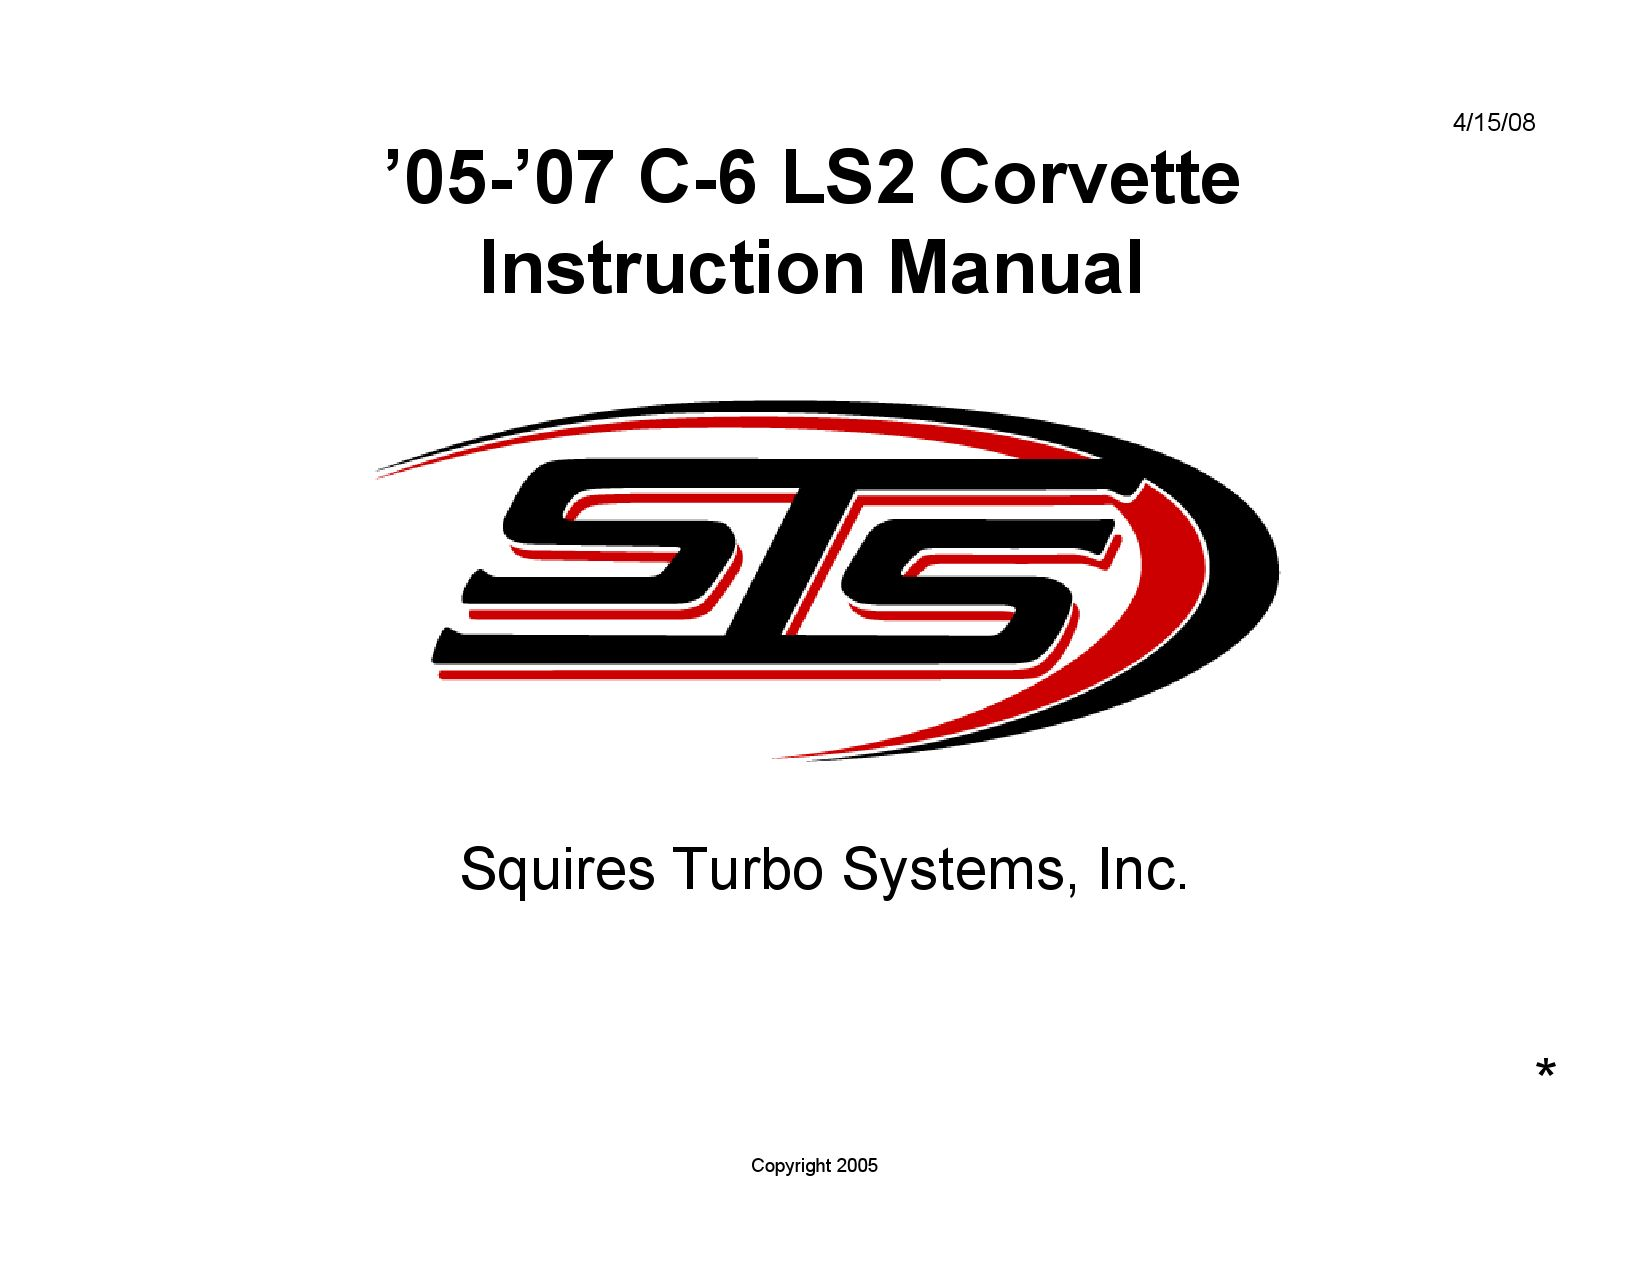 Sts Turbo 05 07 C6 Ls2 Dp Manual By Scott Golembiewski Issuu 2007 Corvette Wiring Diagrams